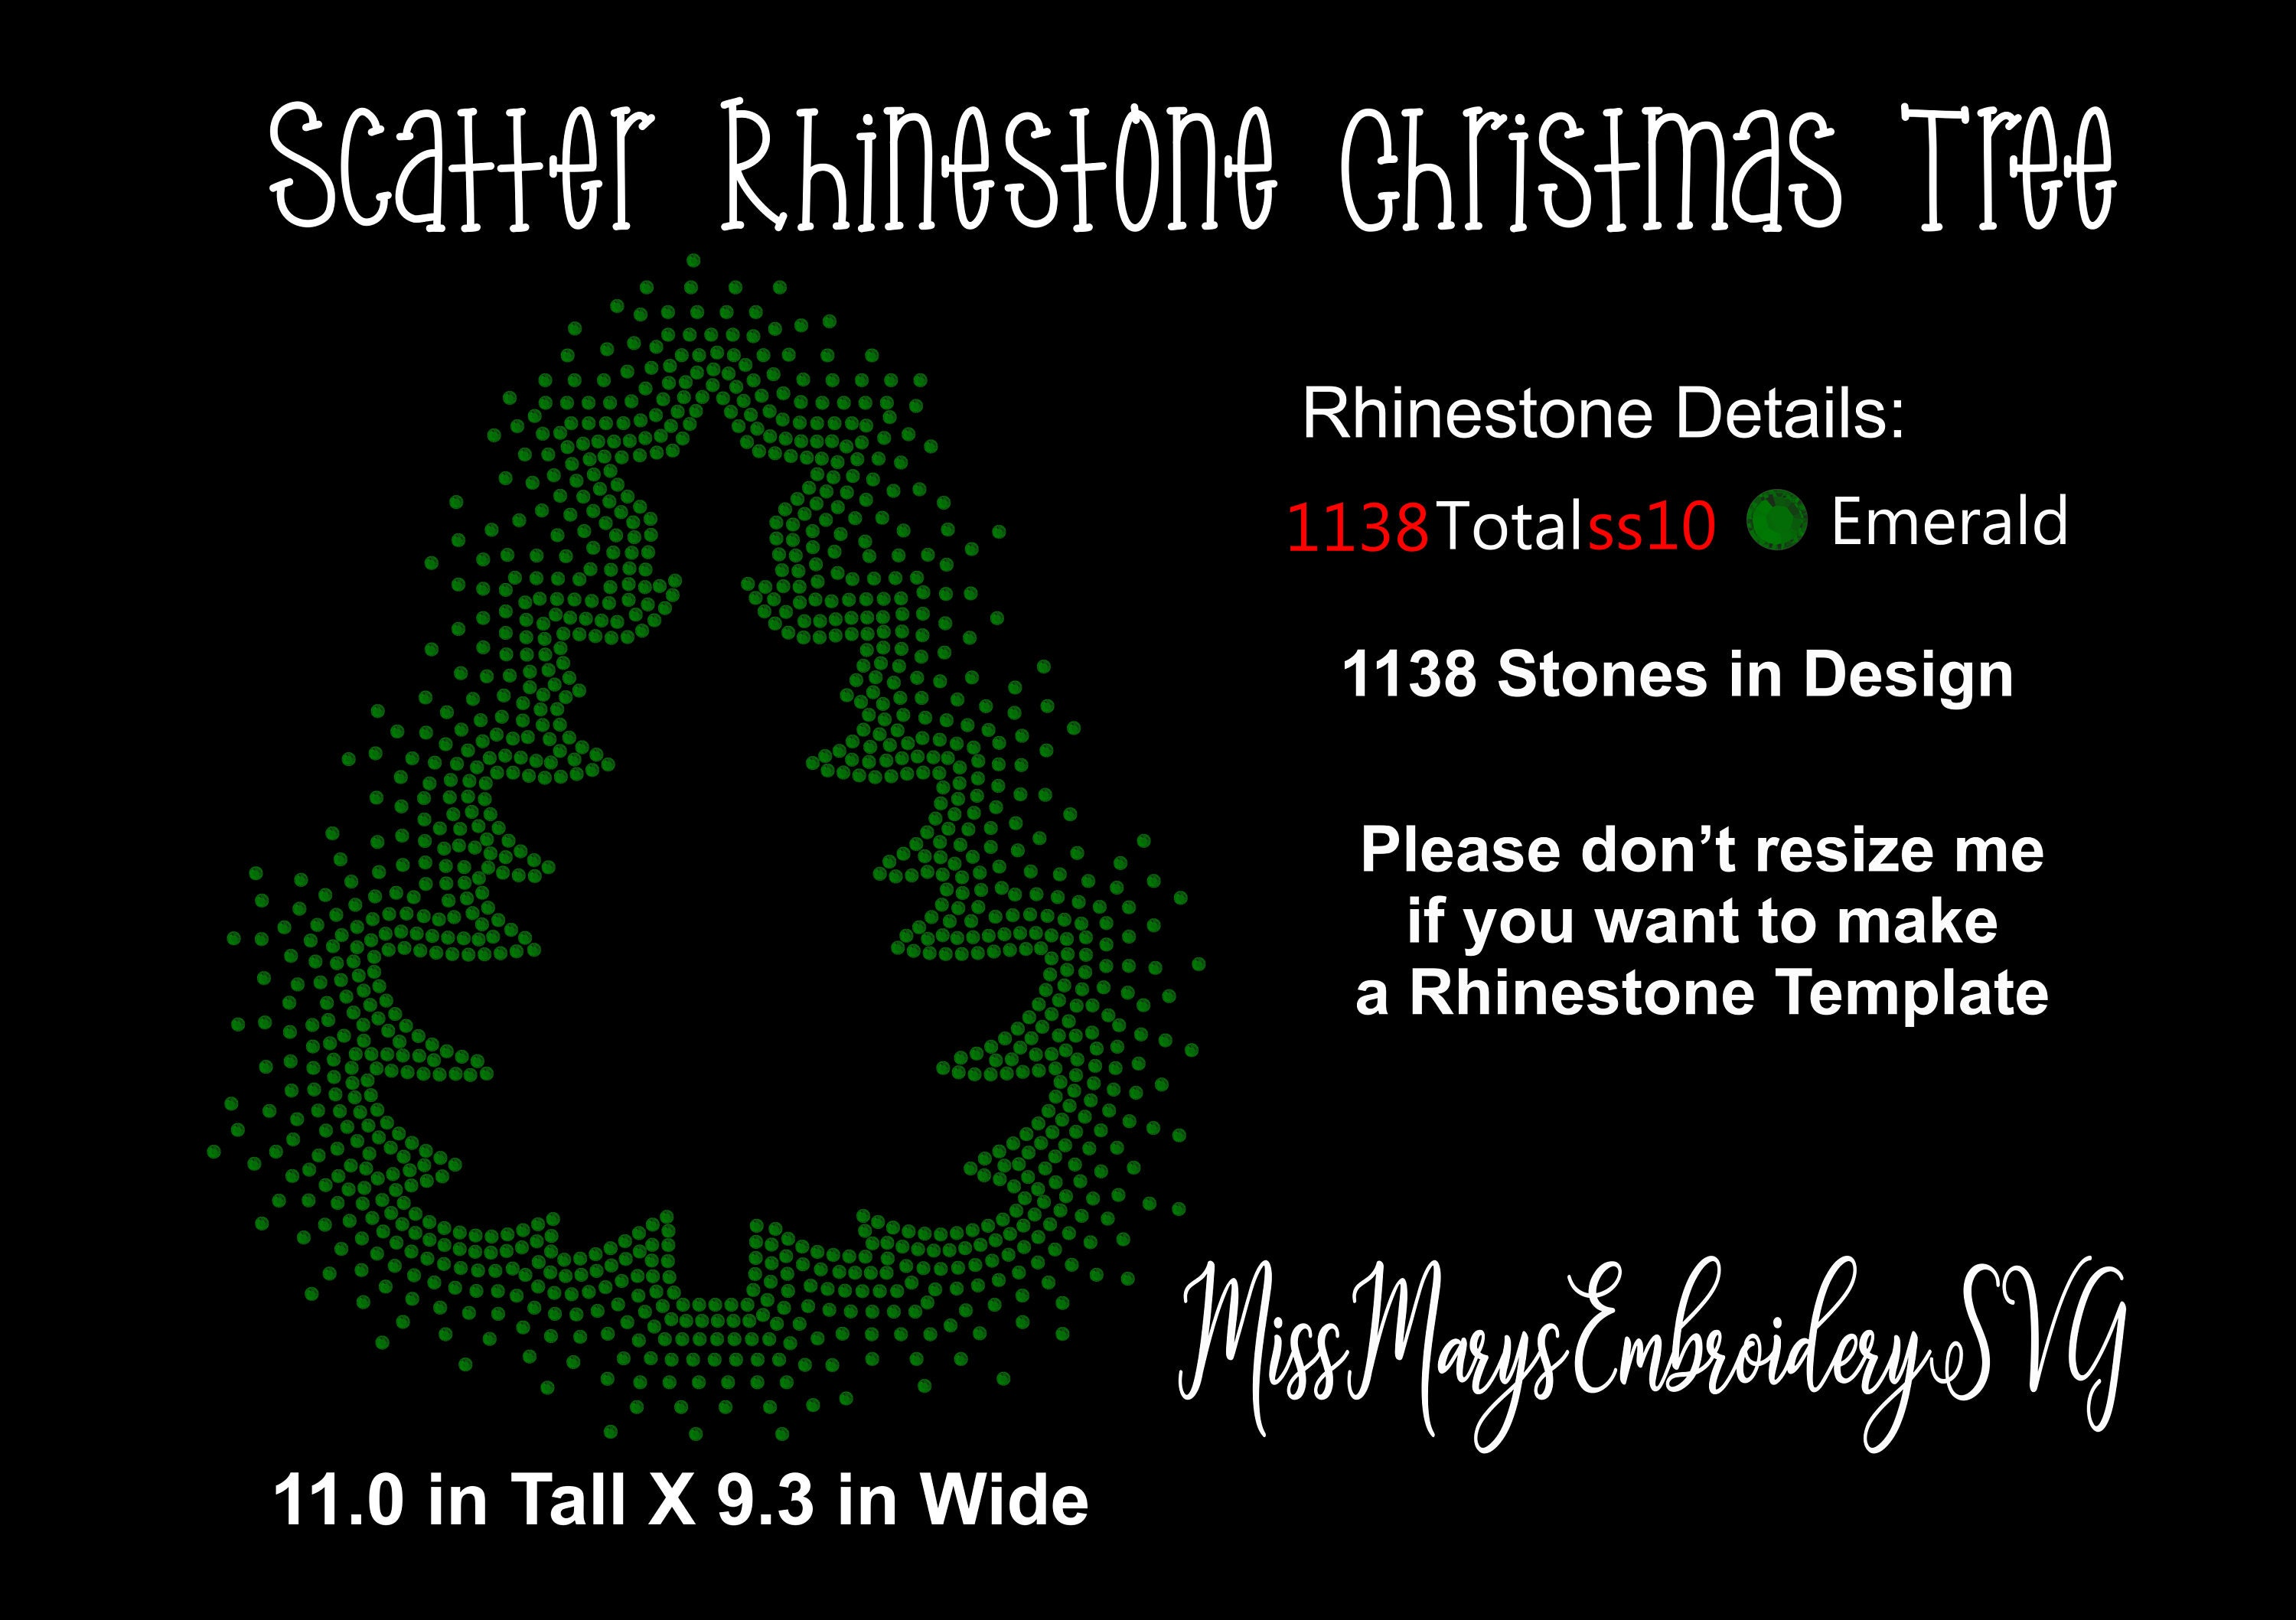 Scatter Rhinestone Christmas Tree Template Design Svg Png Dxf Etsy